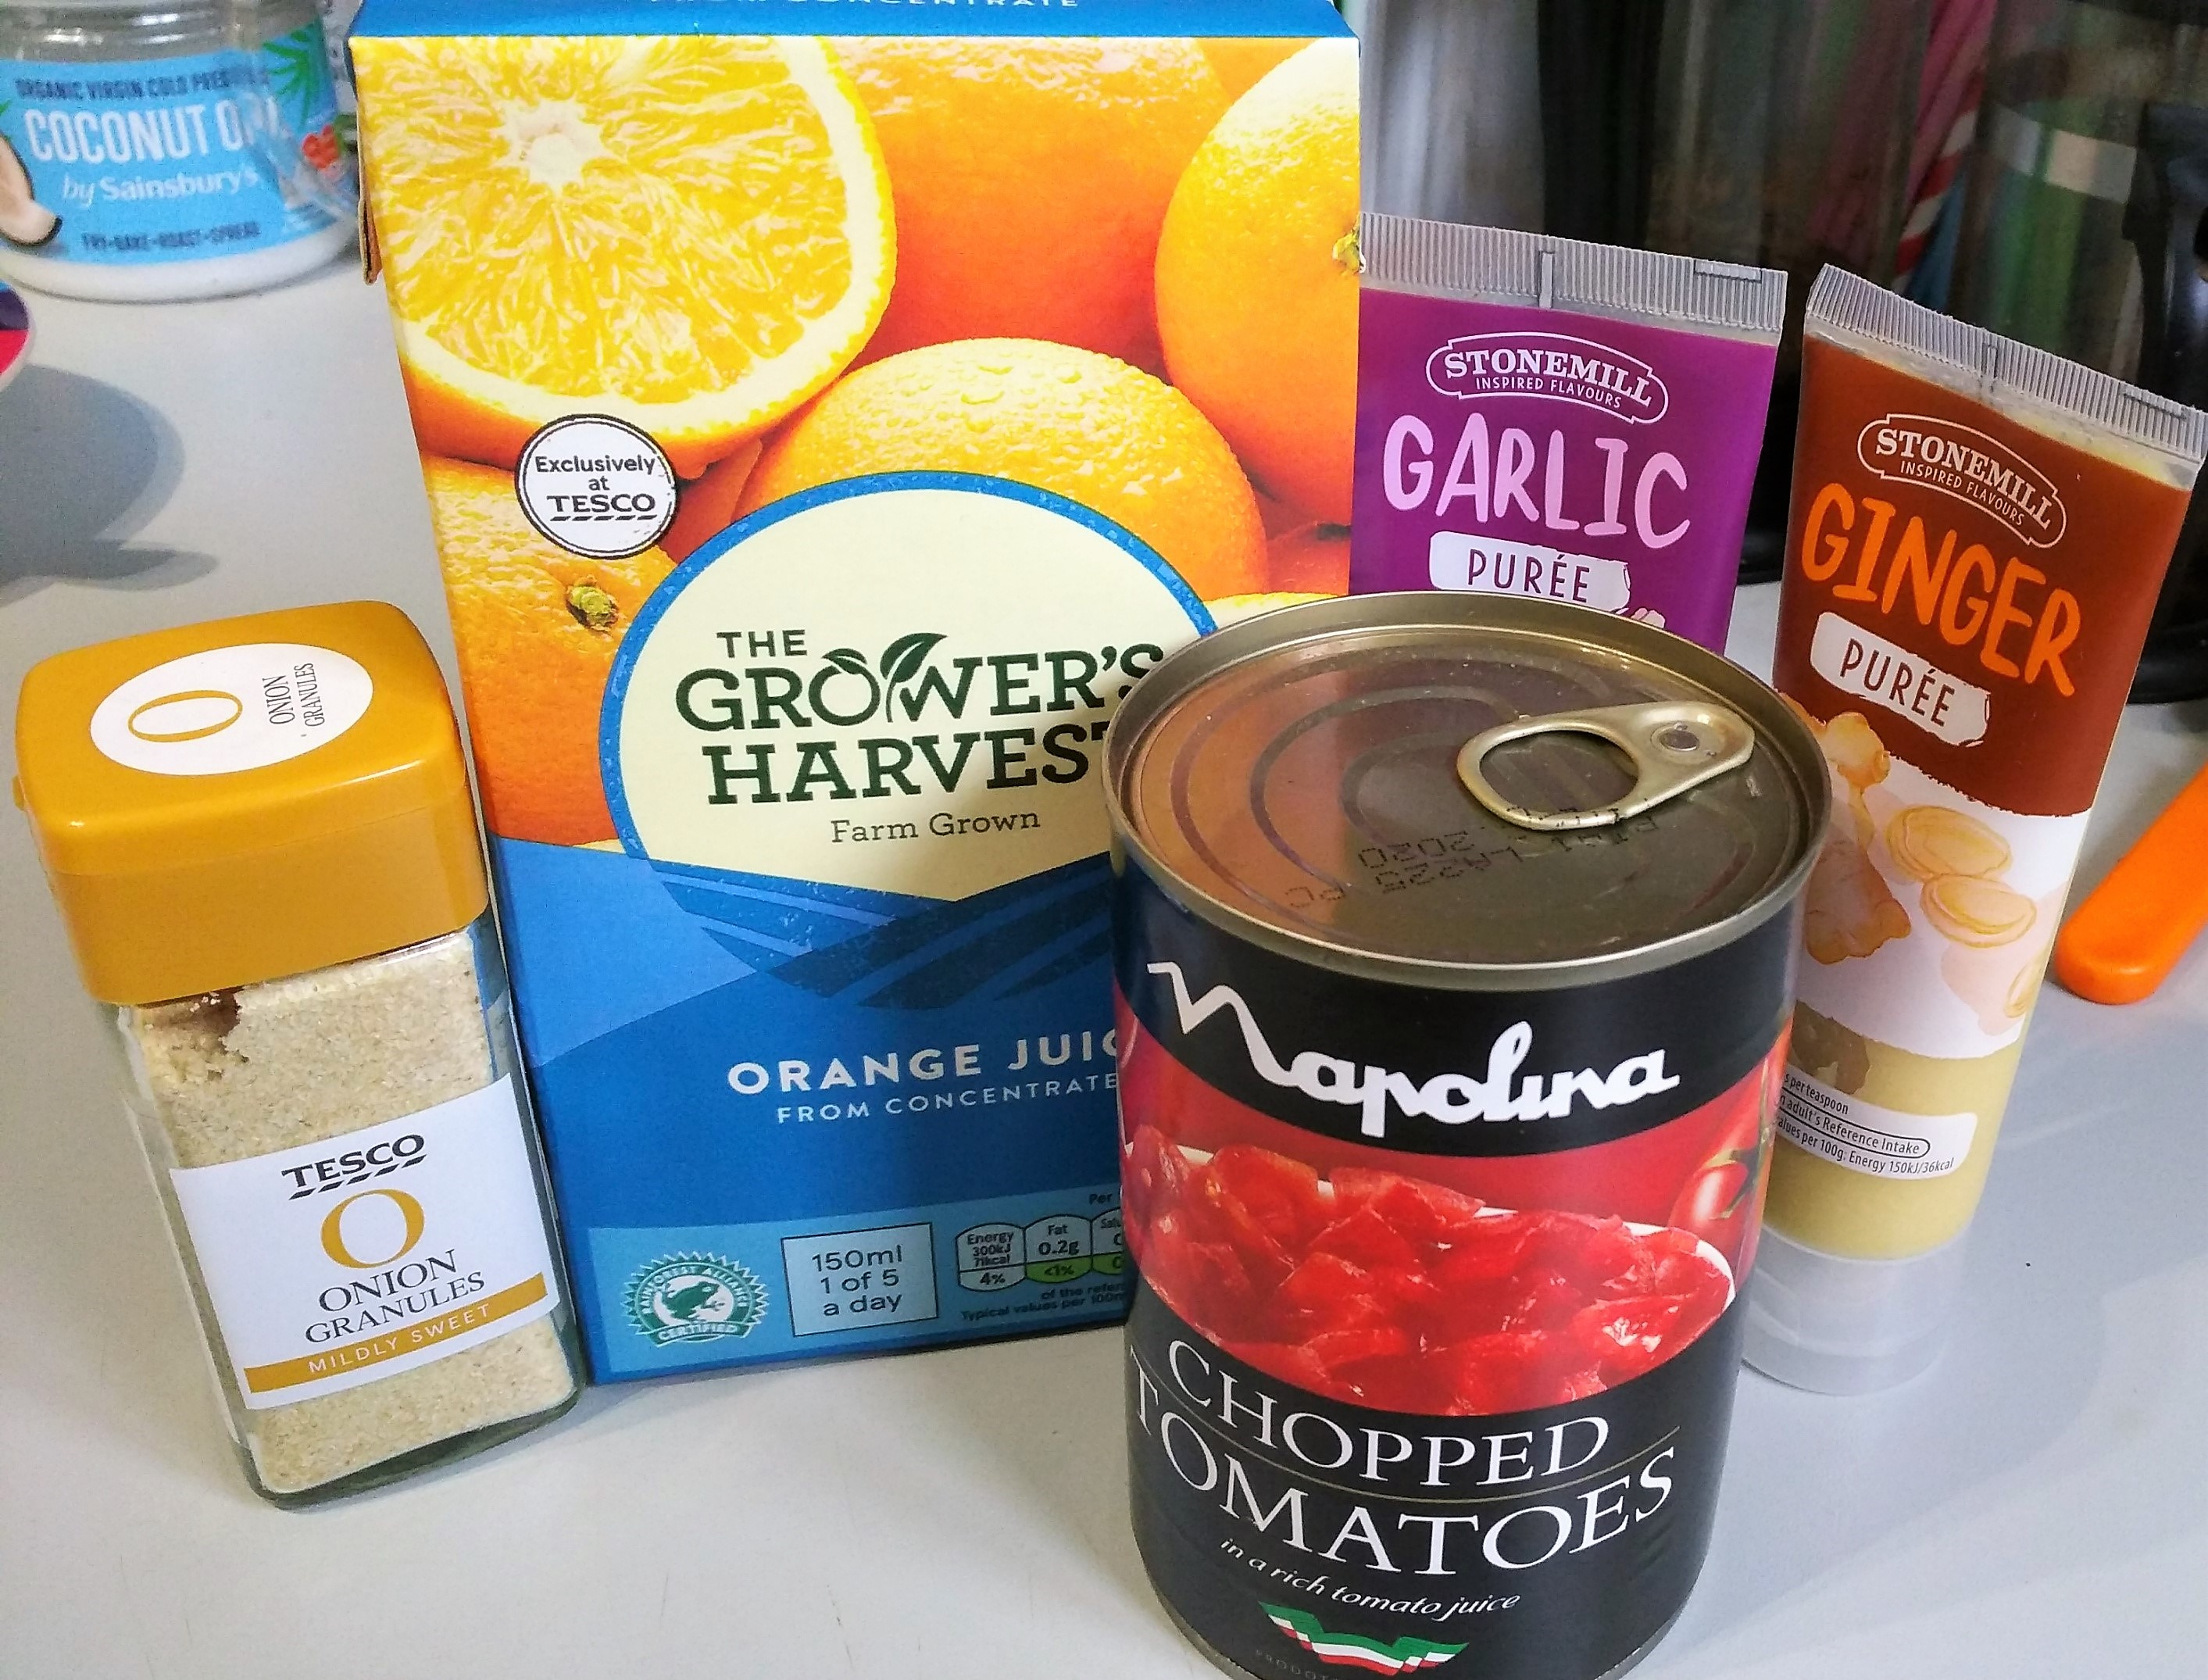 ingredients for tomato and ginger soup recipe - onion granules, orange juice, tinned chopped tomatoes, garlic and ginger puree